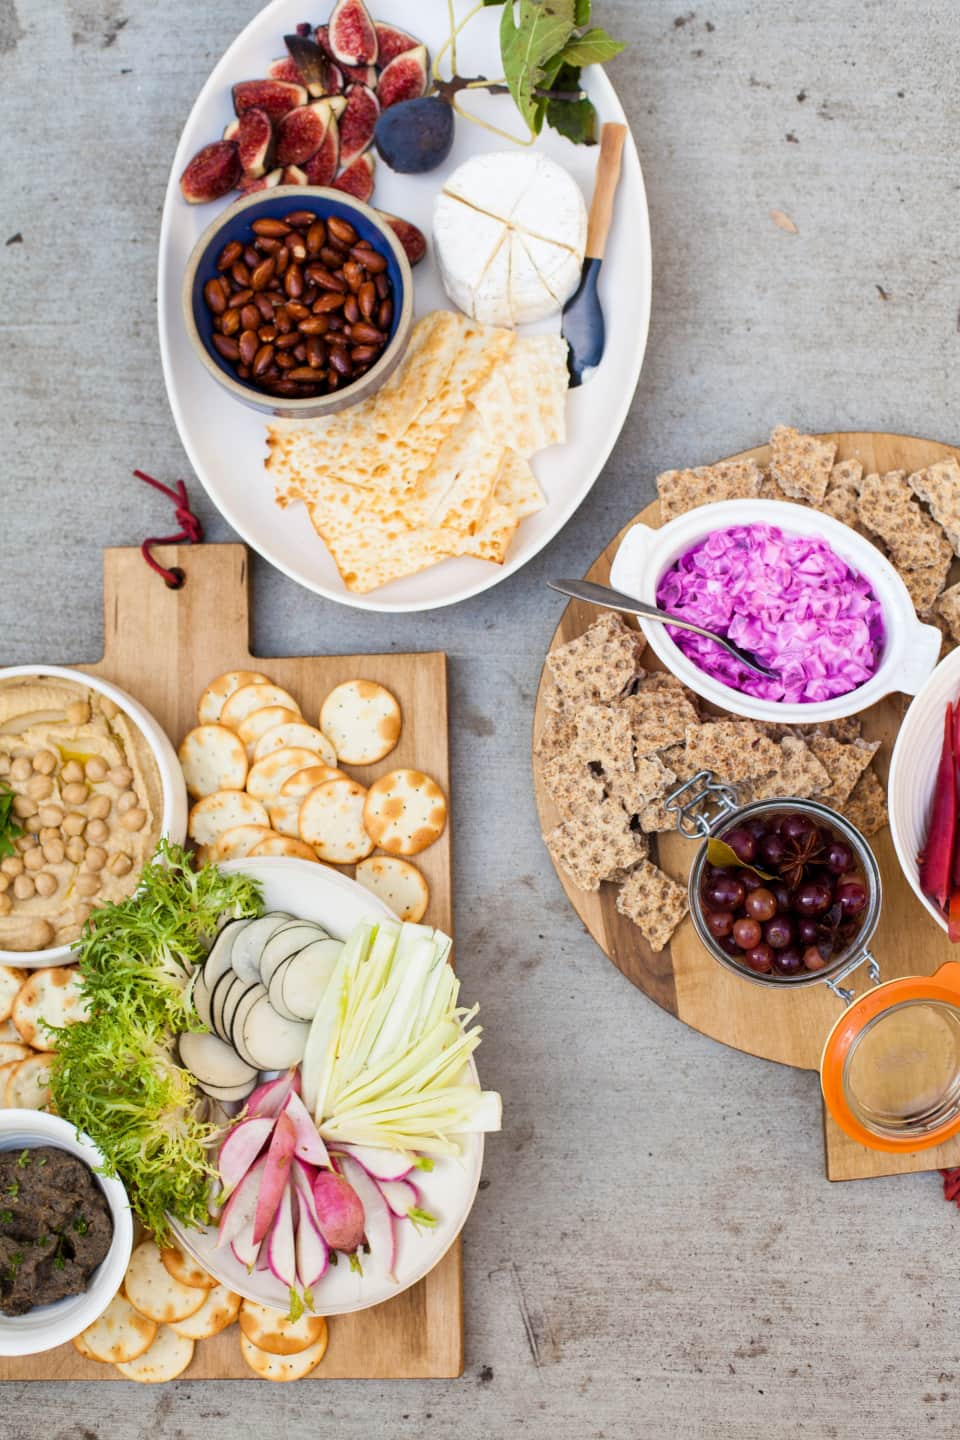 Thanksgiving Inspiration Modern Relish Tray | The Most Beautiful And Tasty Party Platters For Every Occasion